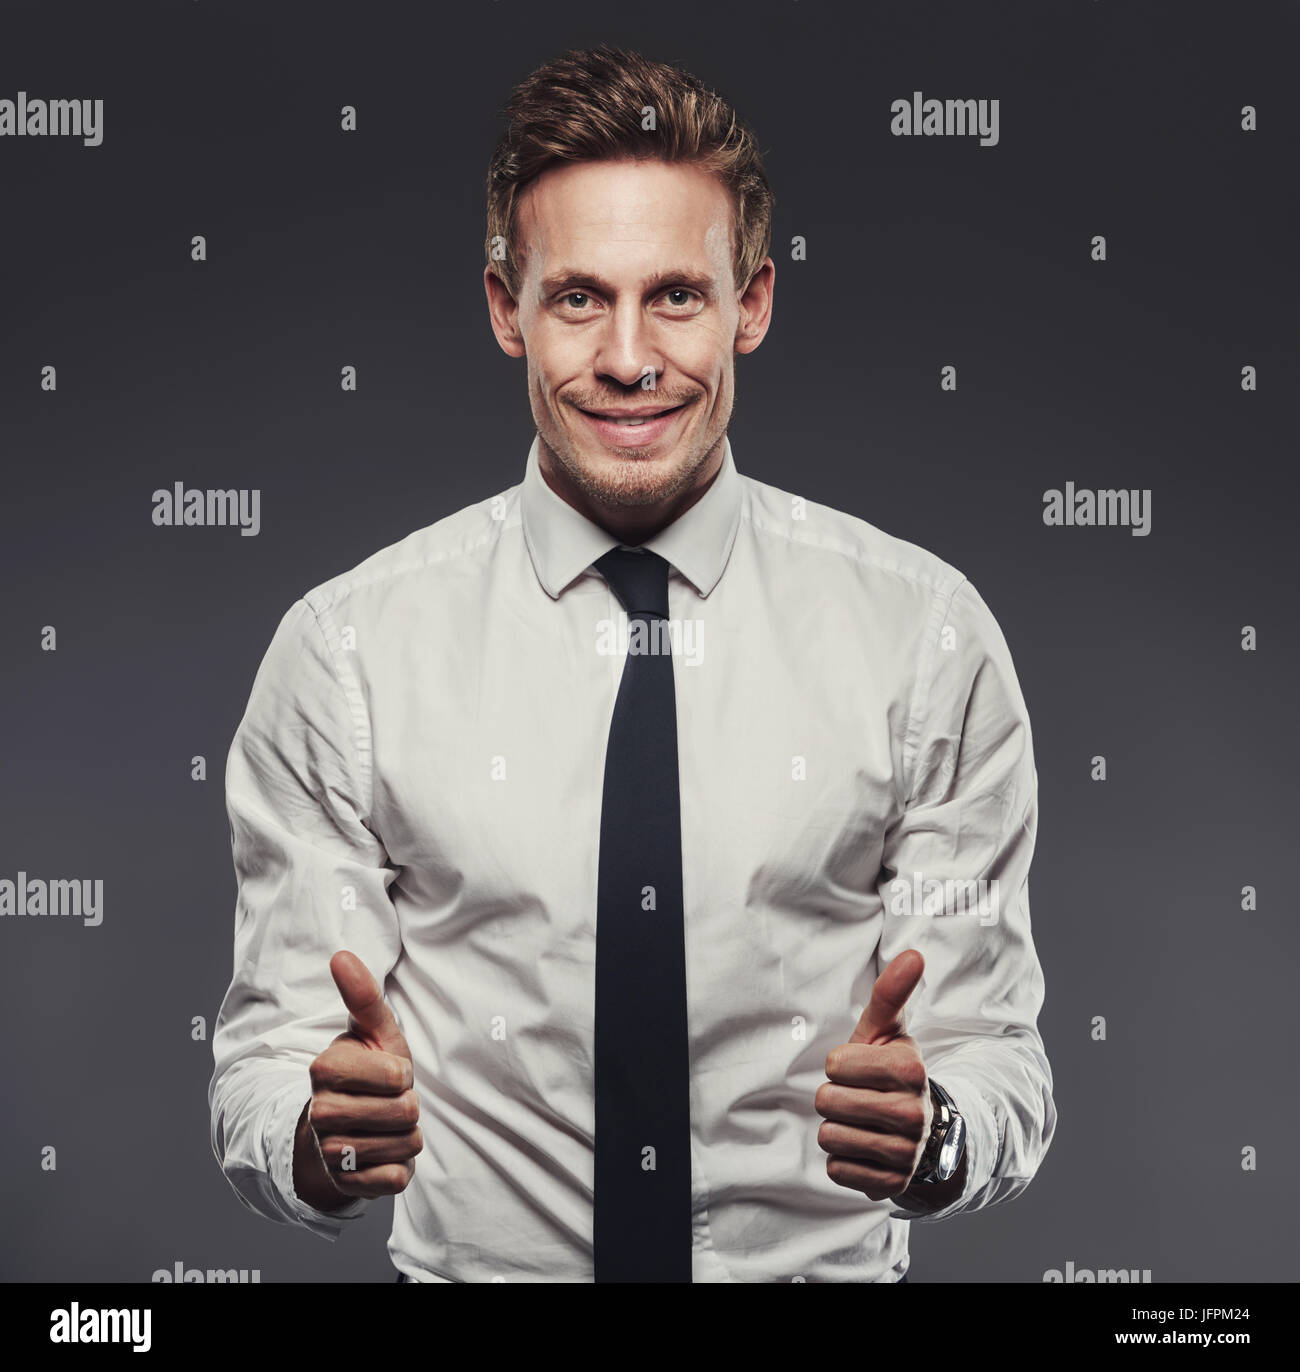 Smiling young businessman wearing a shirt and tie giving an enthusiastic thumbs up while standing alone in a studio - Stock Image